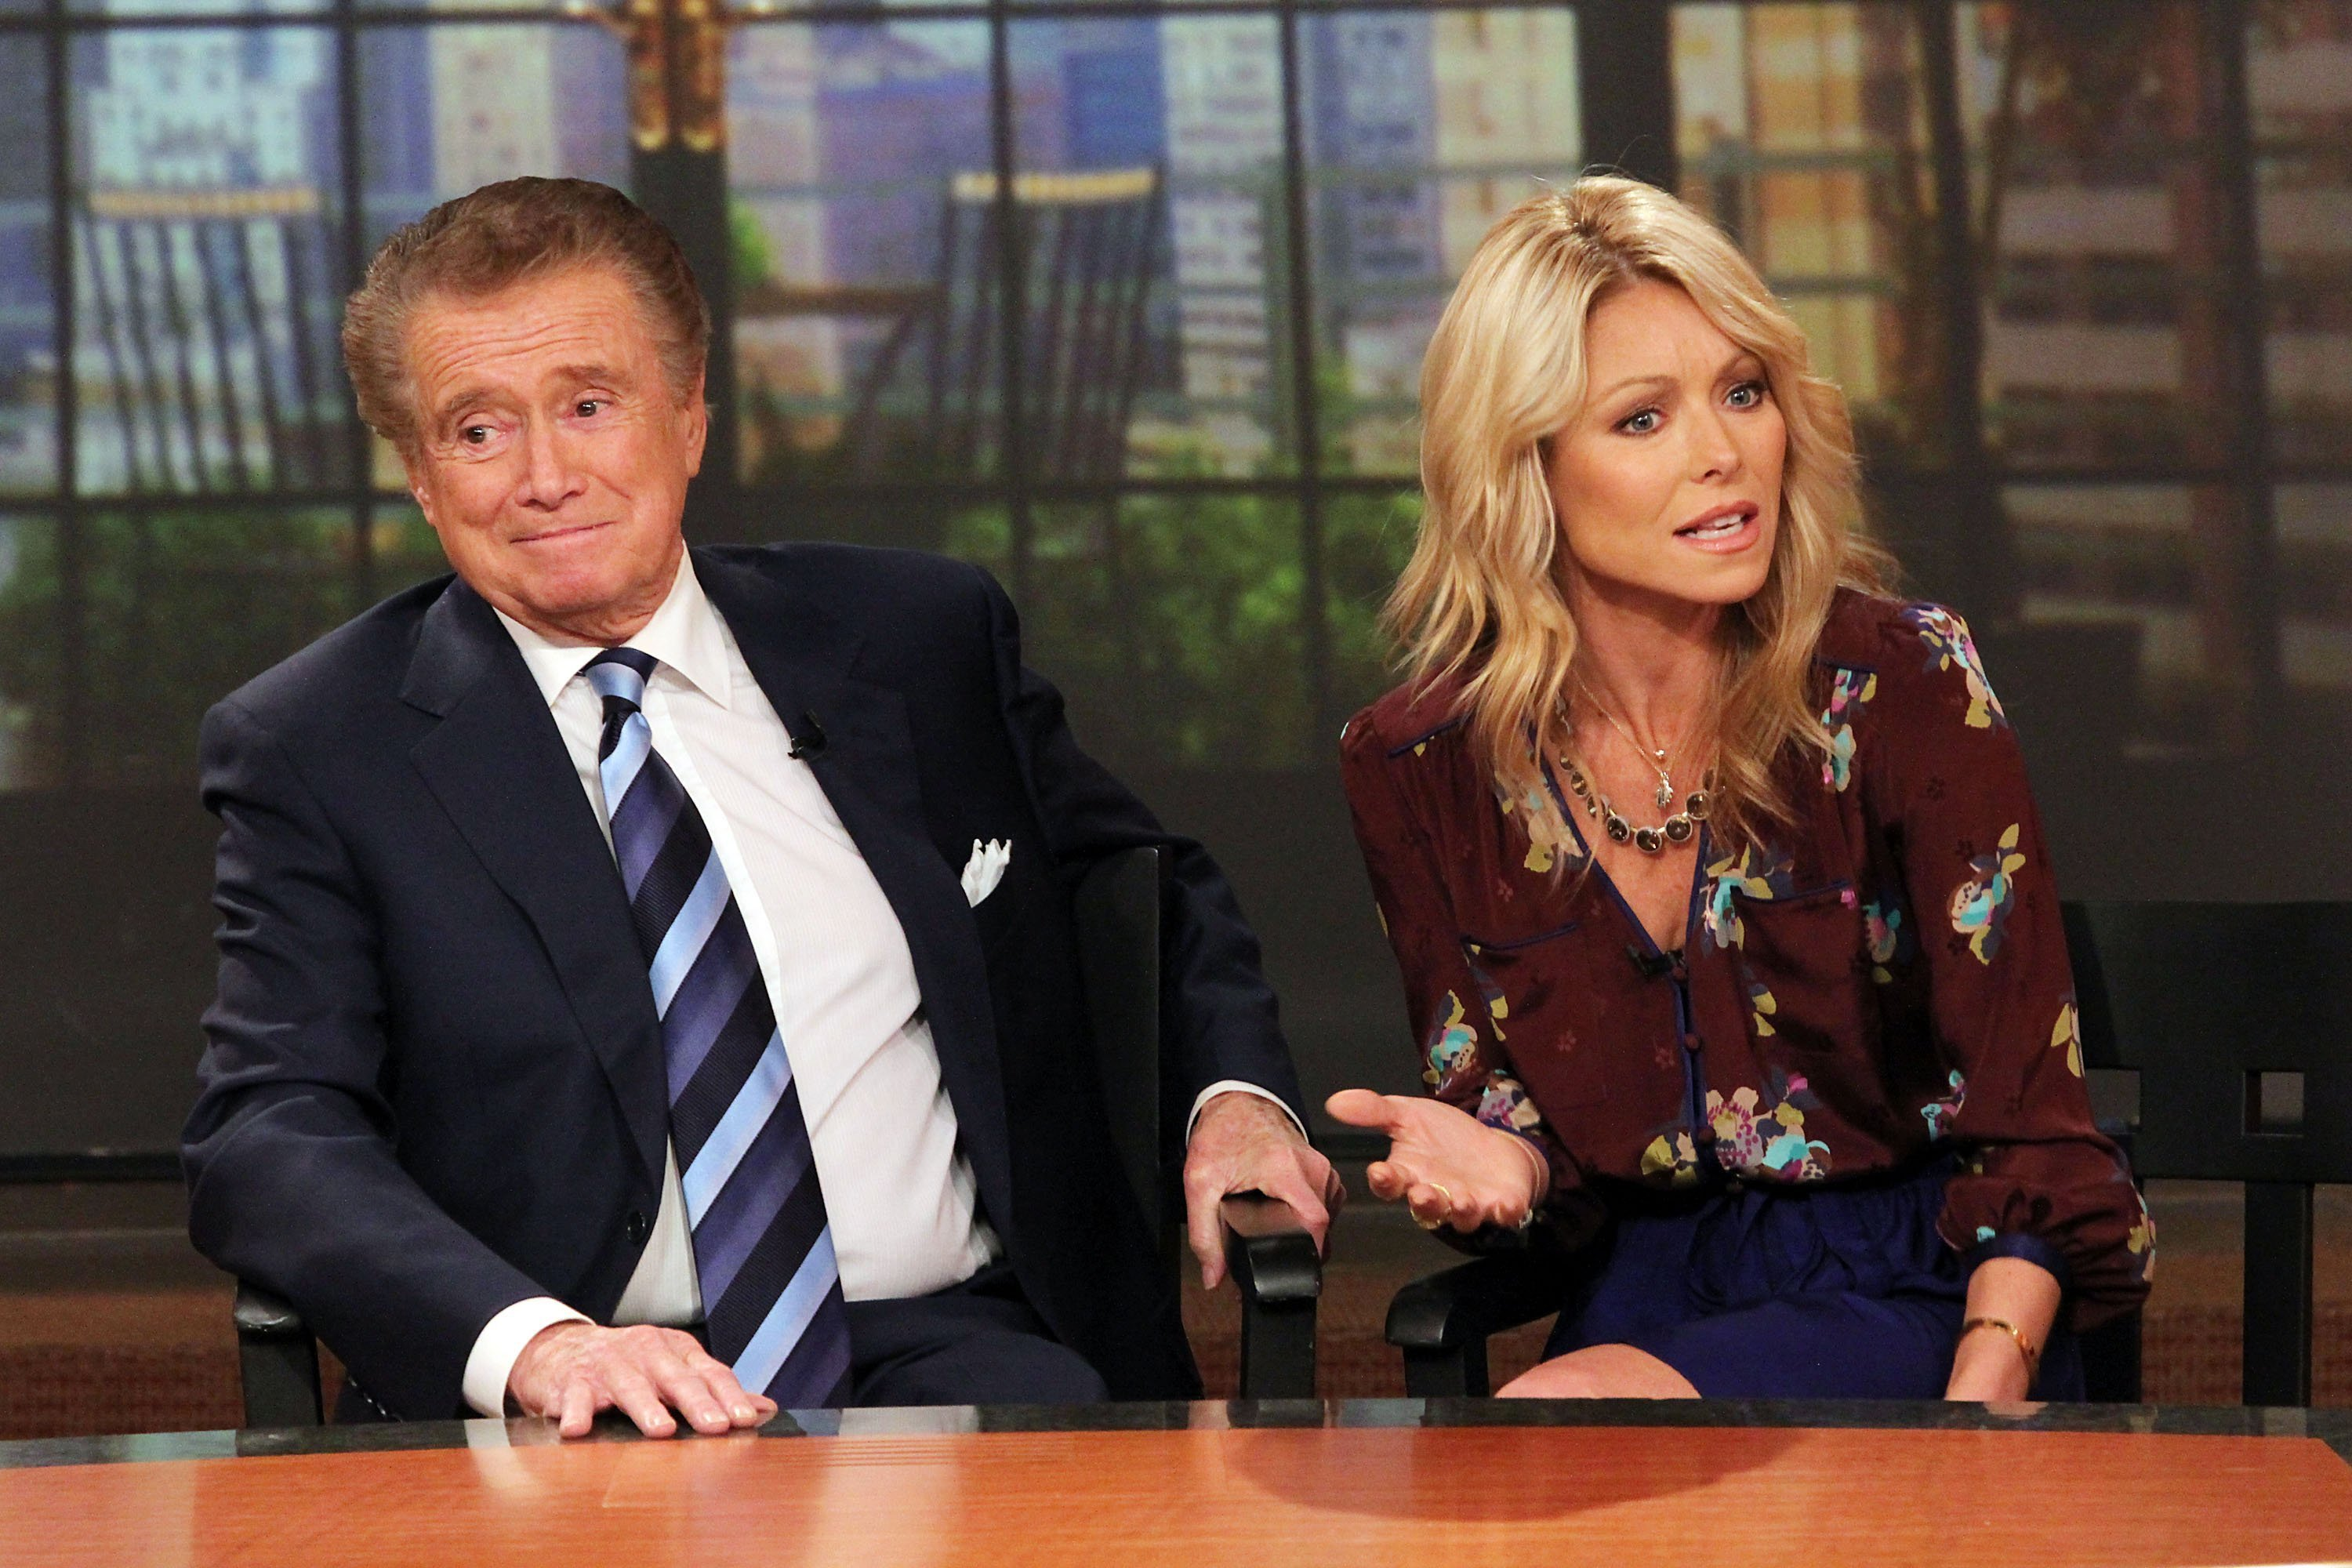 Regis Philbin and Kelly Ripa on November 17, 2011 in New York City | Source: Getty Images